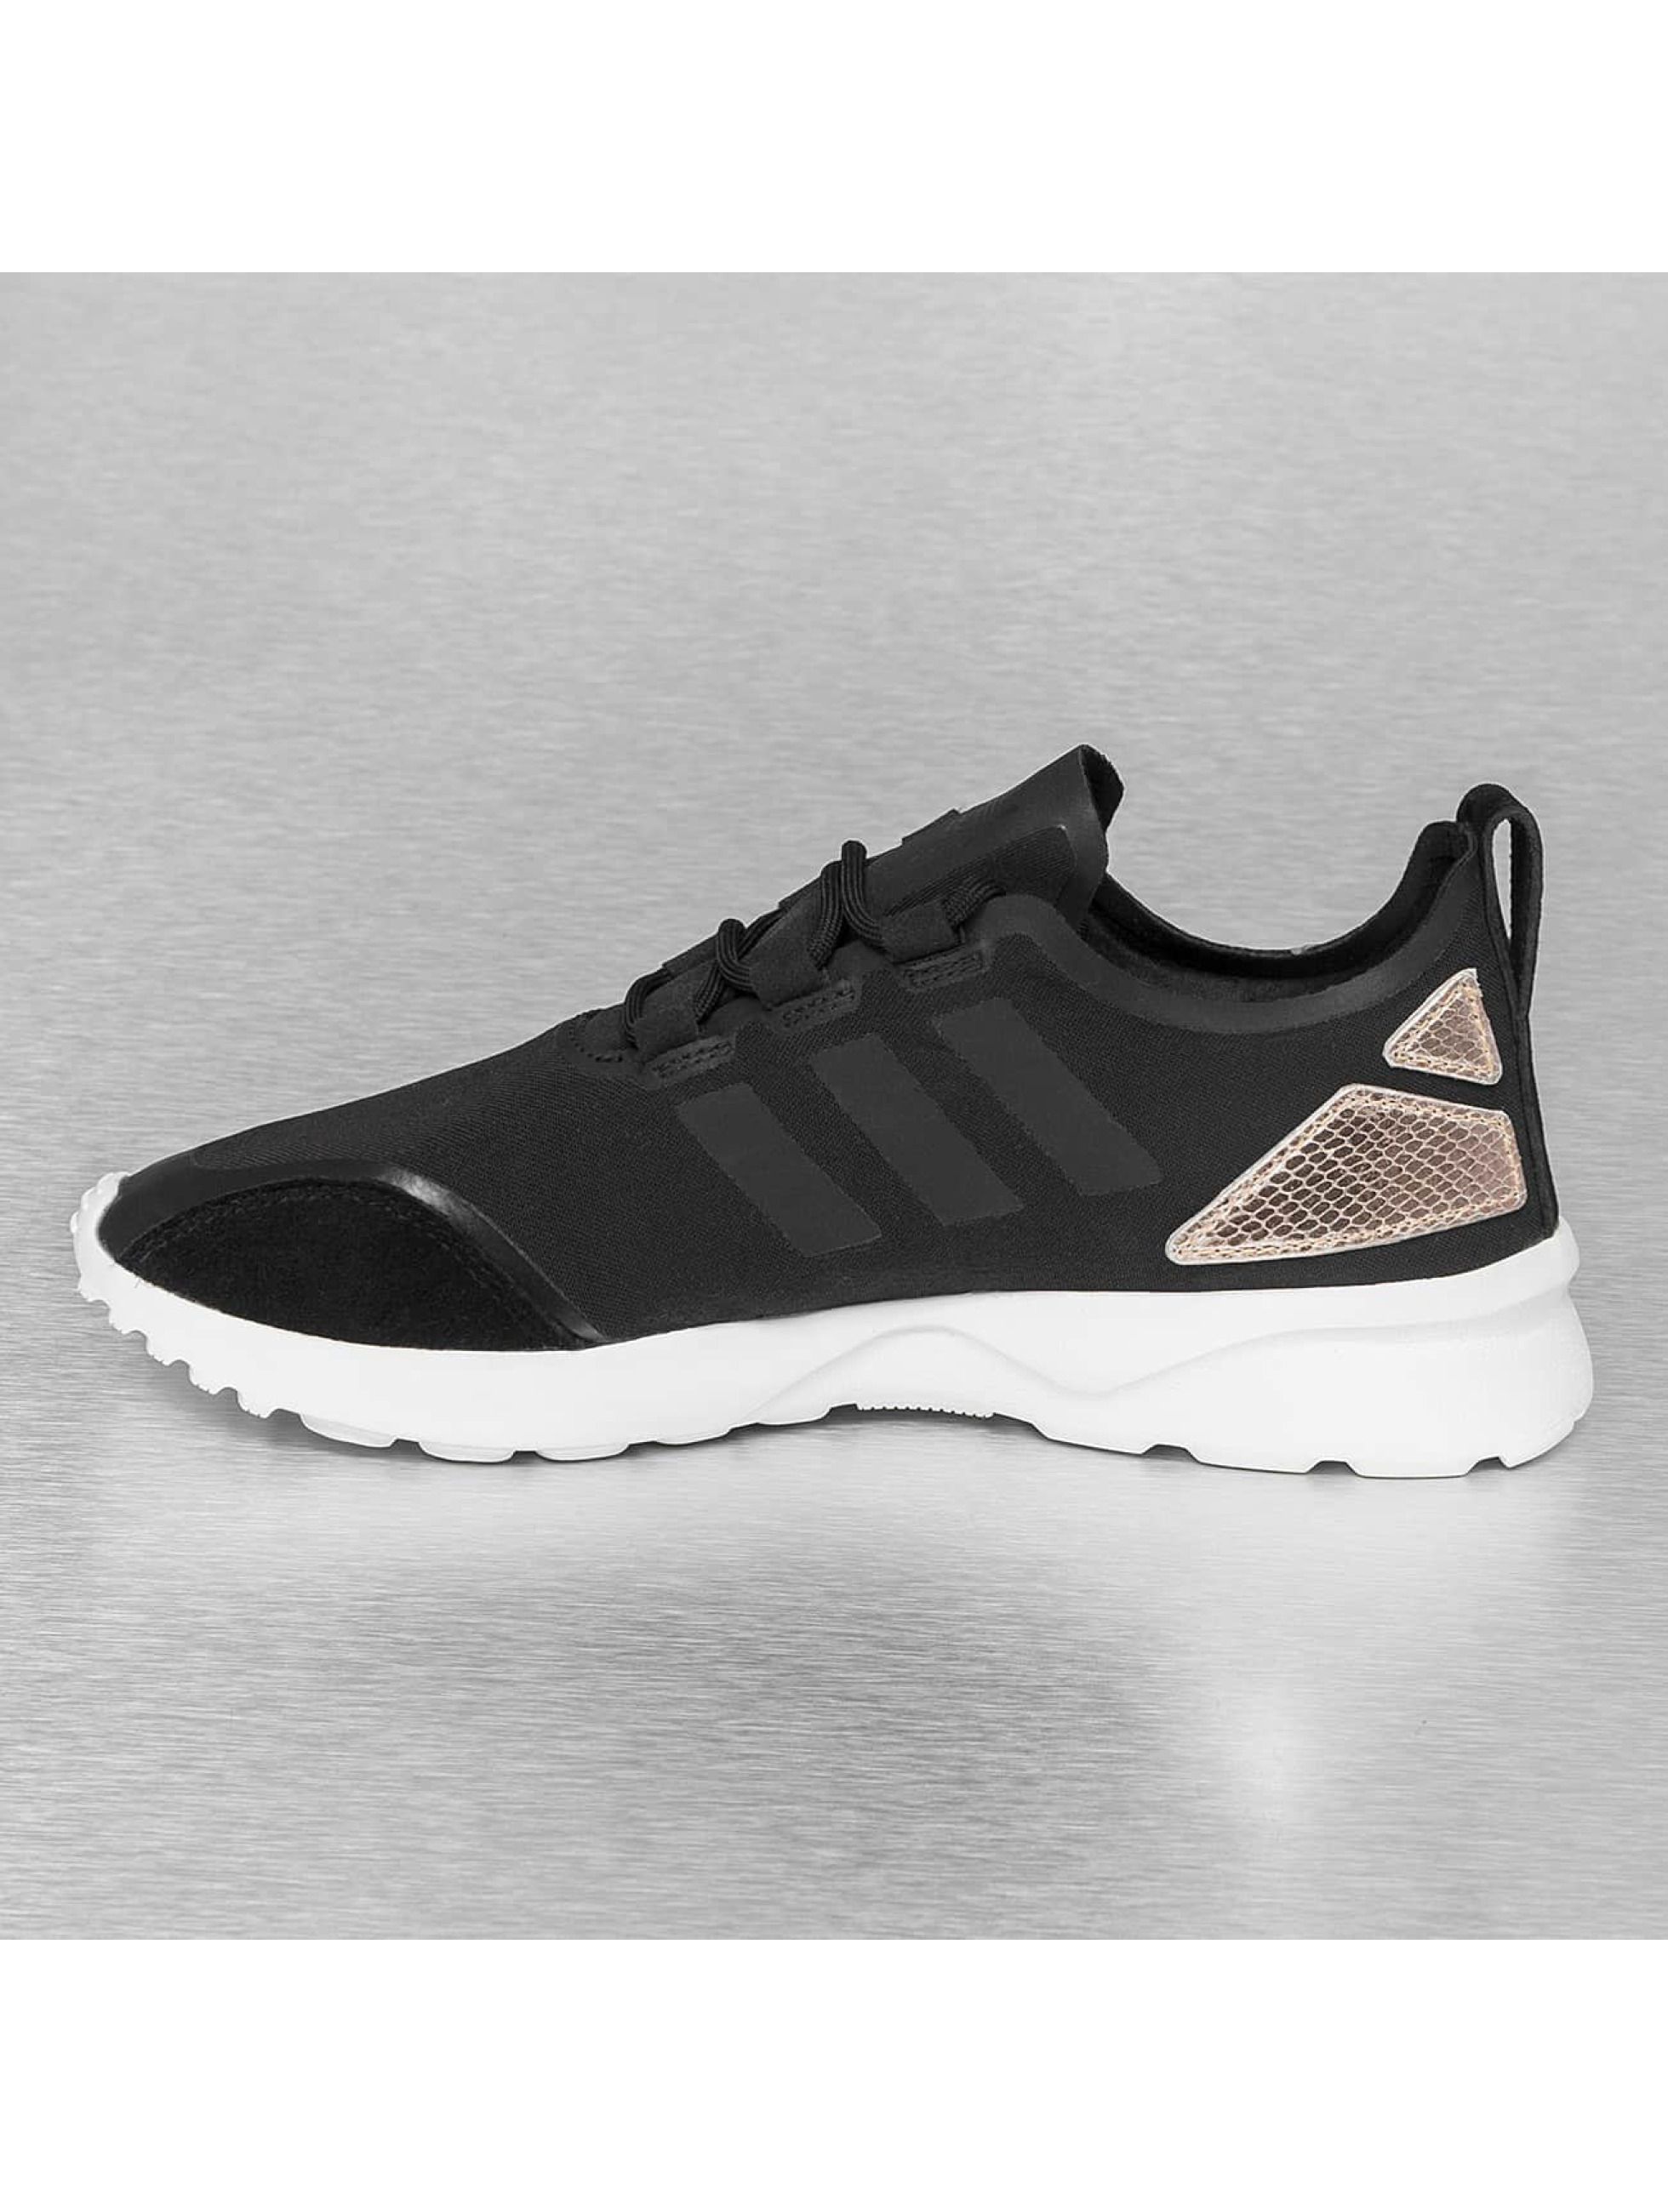 the latest 7ff19 7bcc4 new style adidas zx flux black copper kopen b4d24 eaf5b